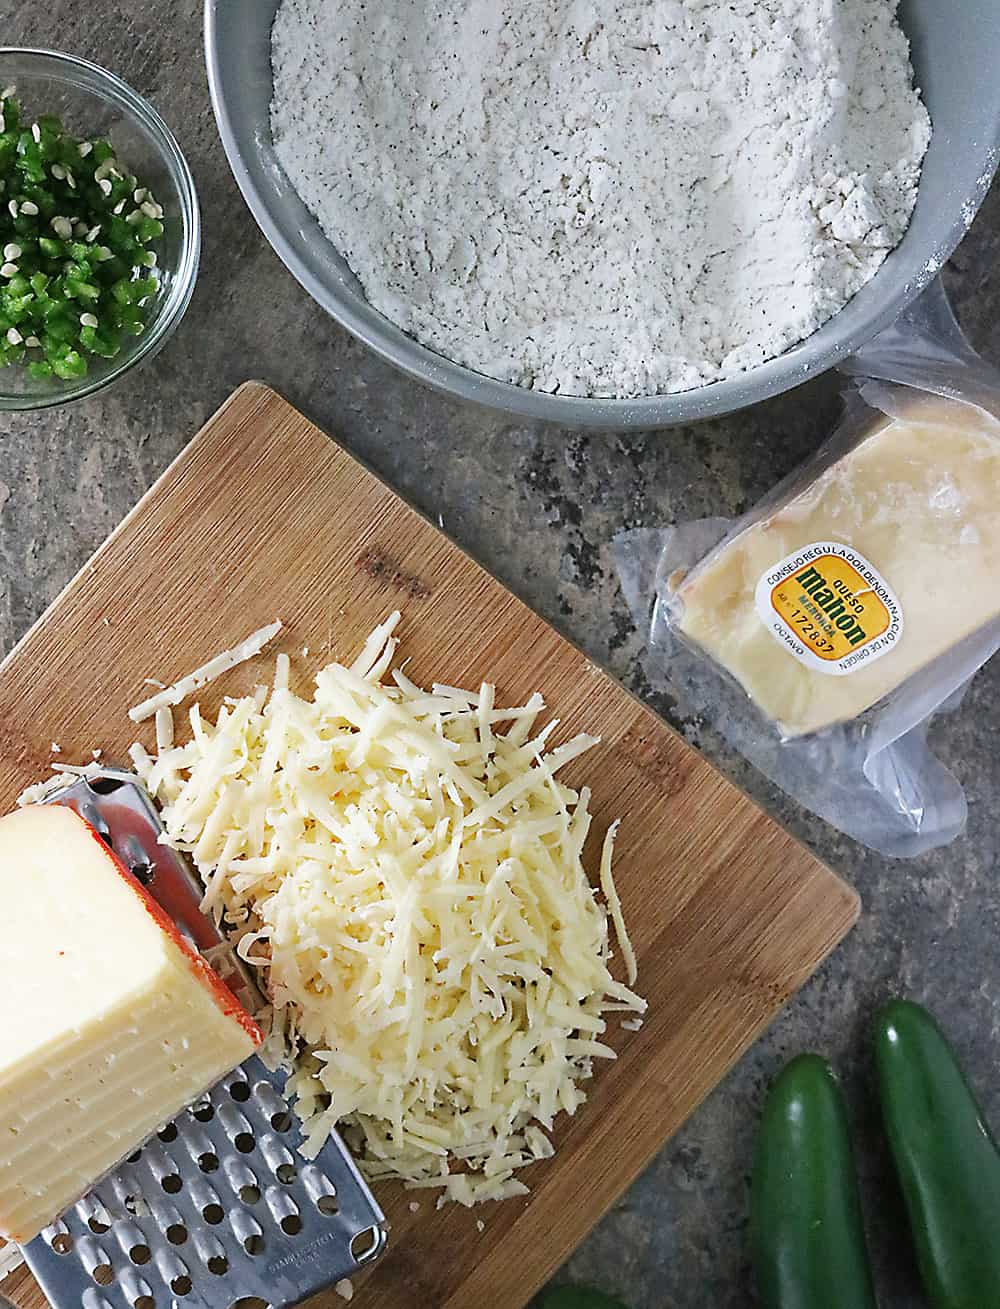 Photo Ingredients For Jalapeno Cheese Crackers With Mahon Cheese